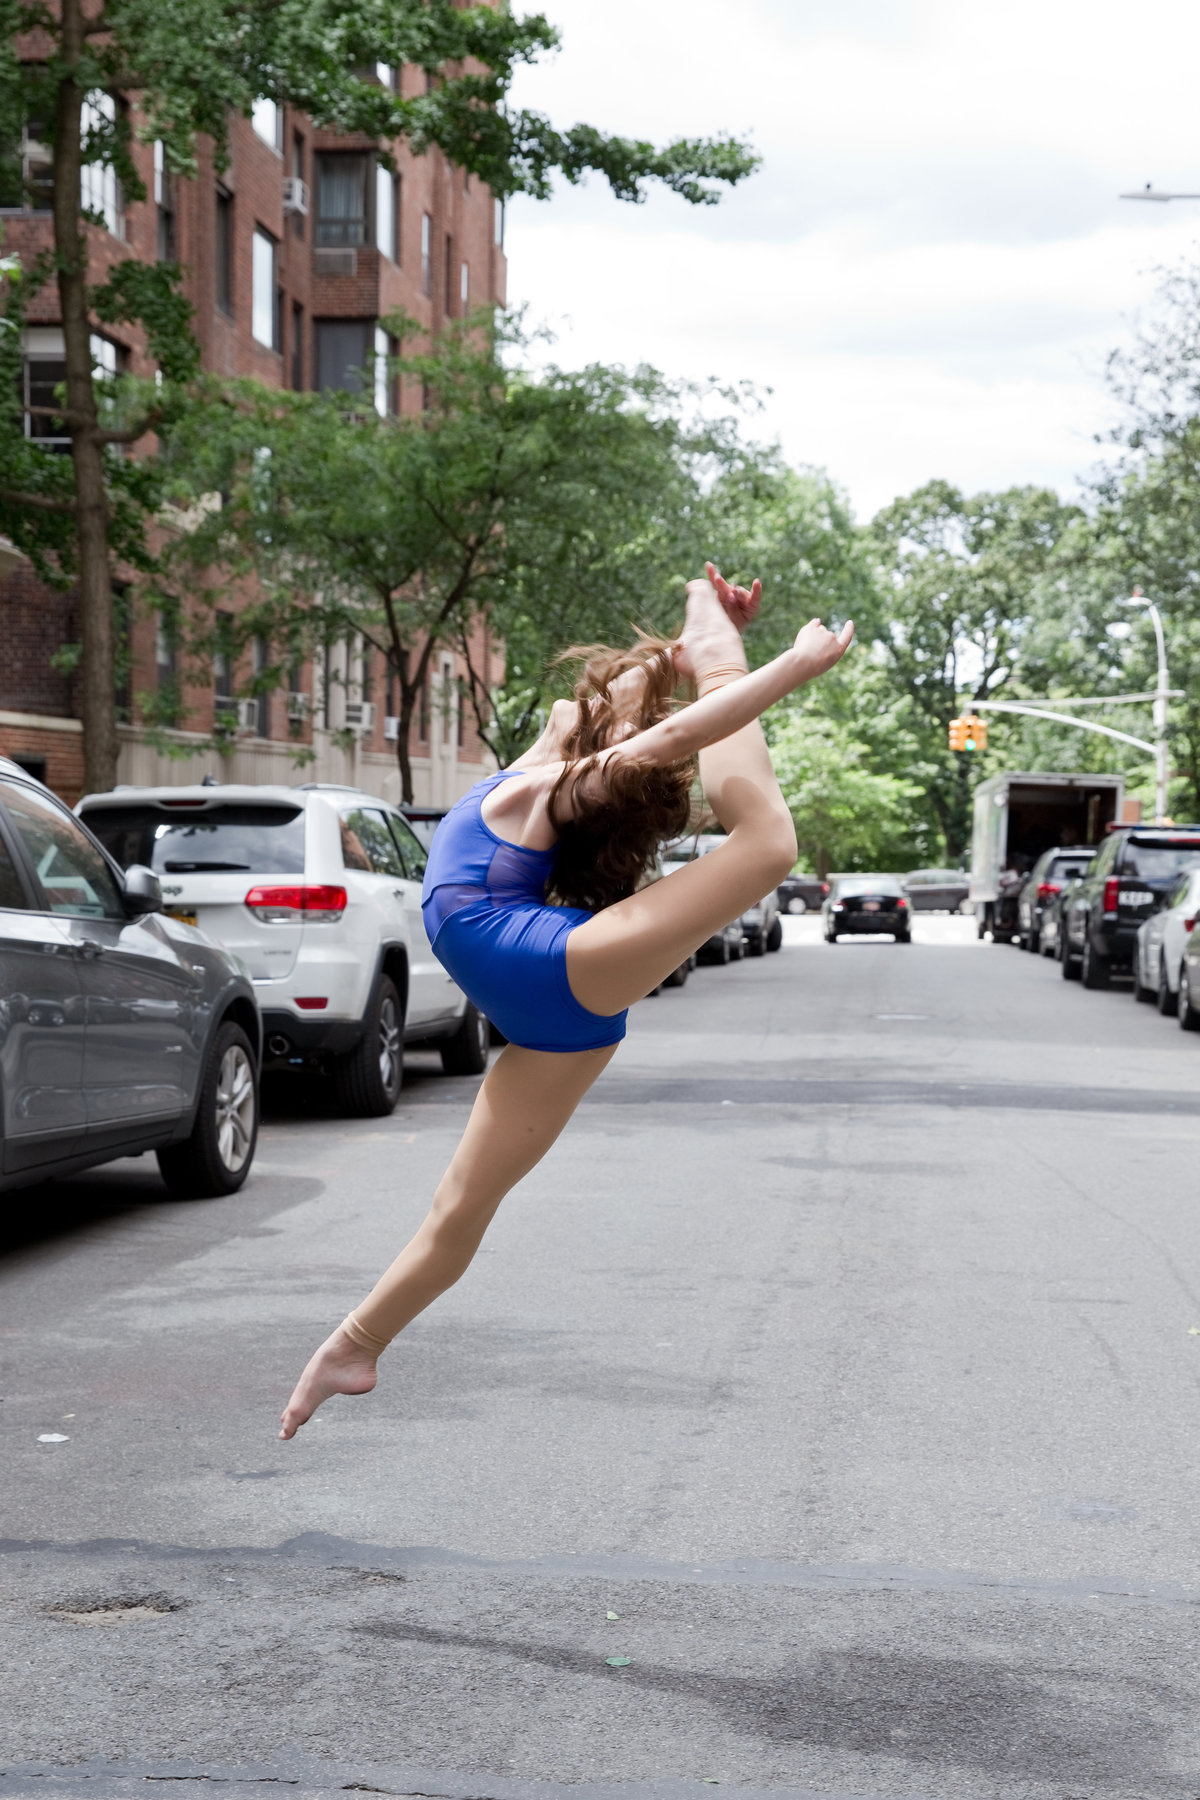 NY Dance Photography